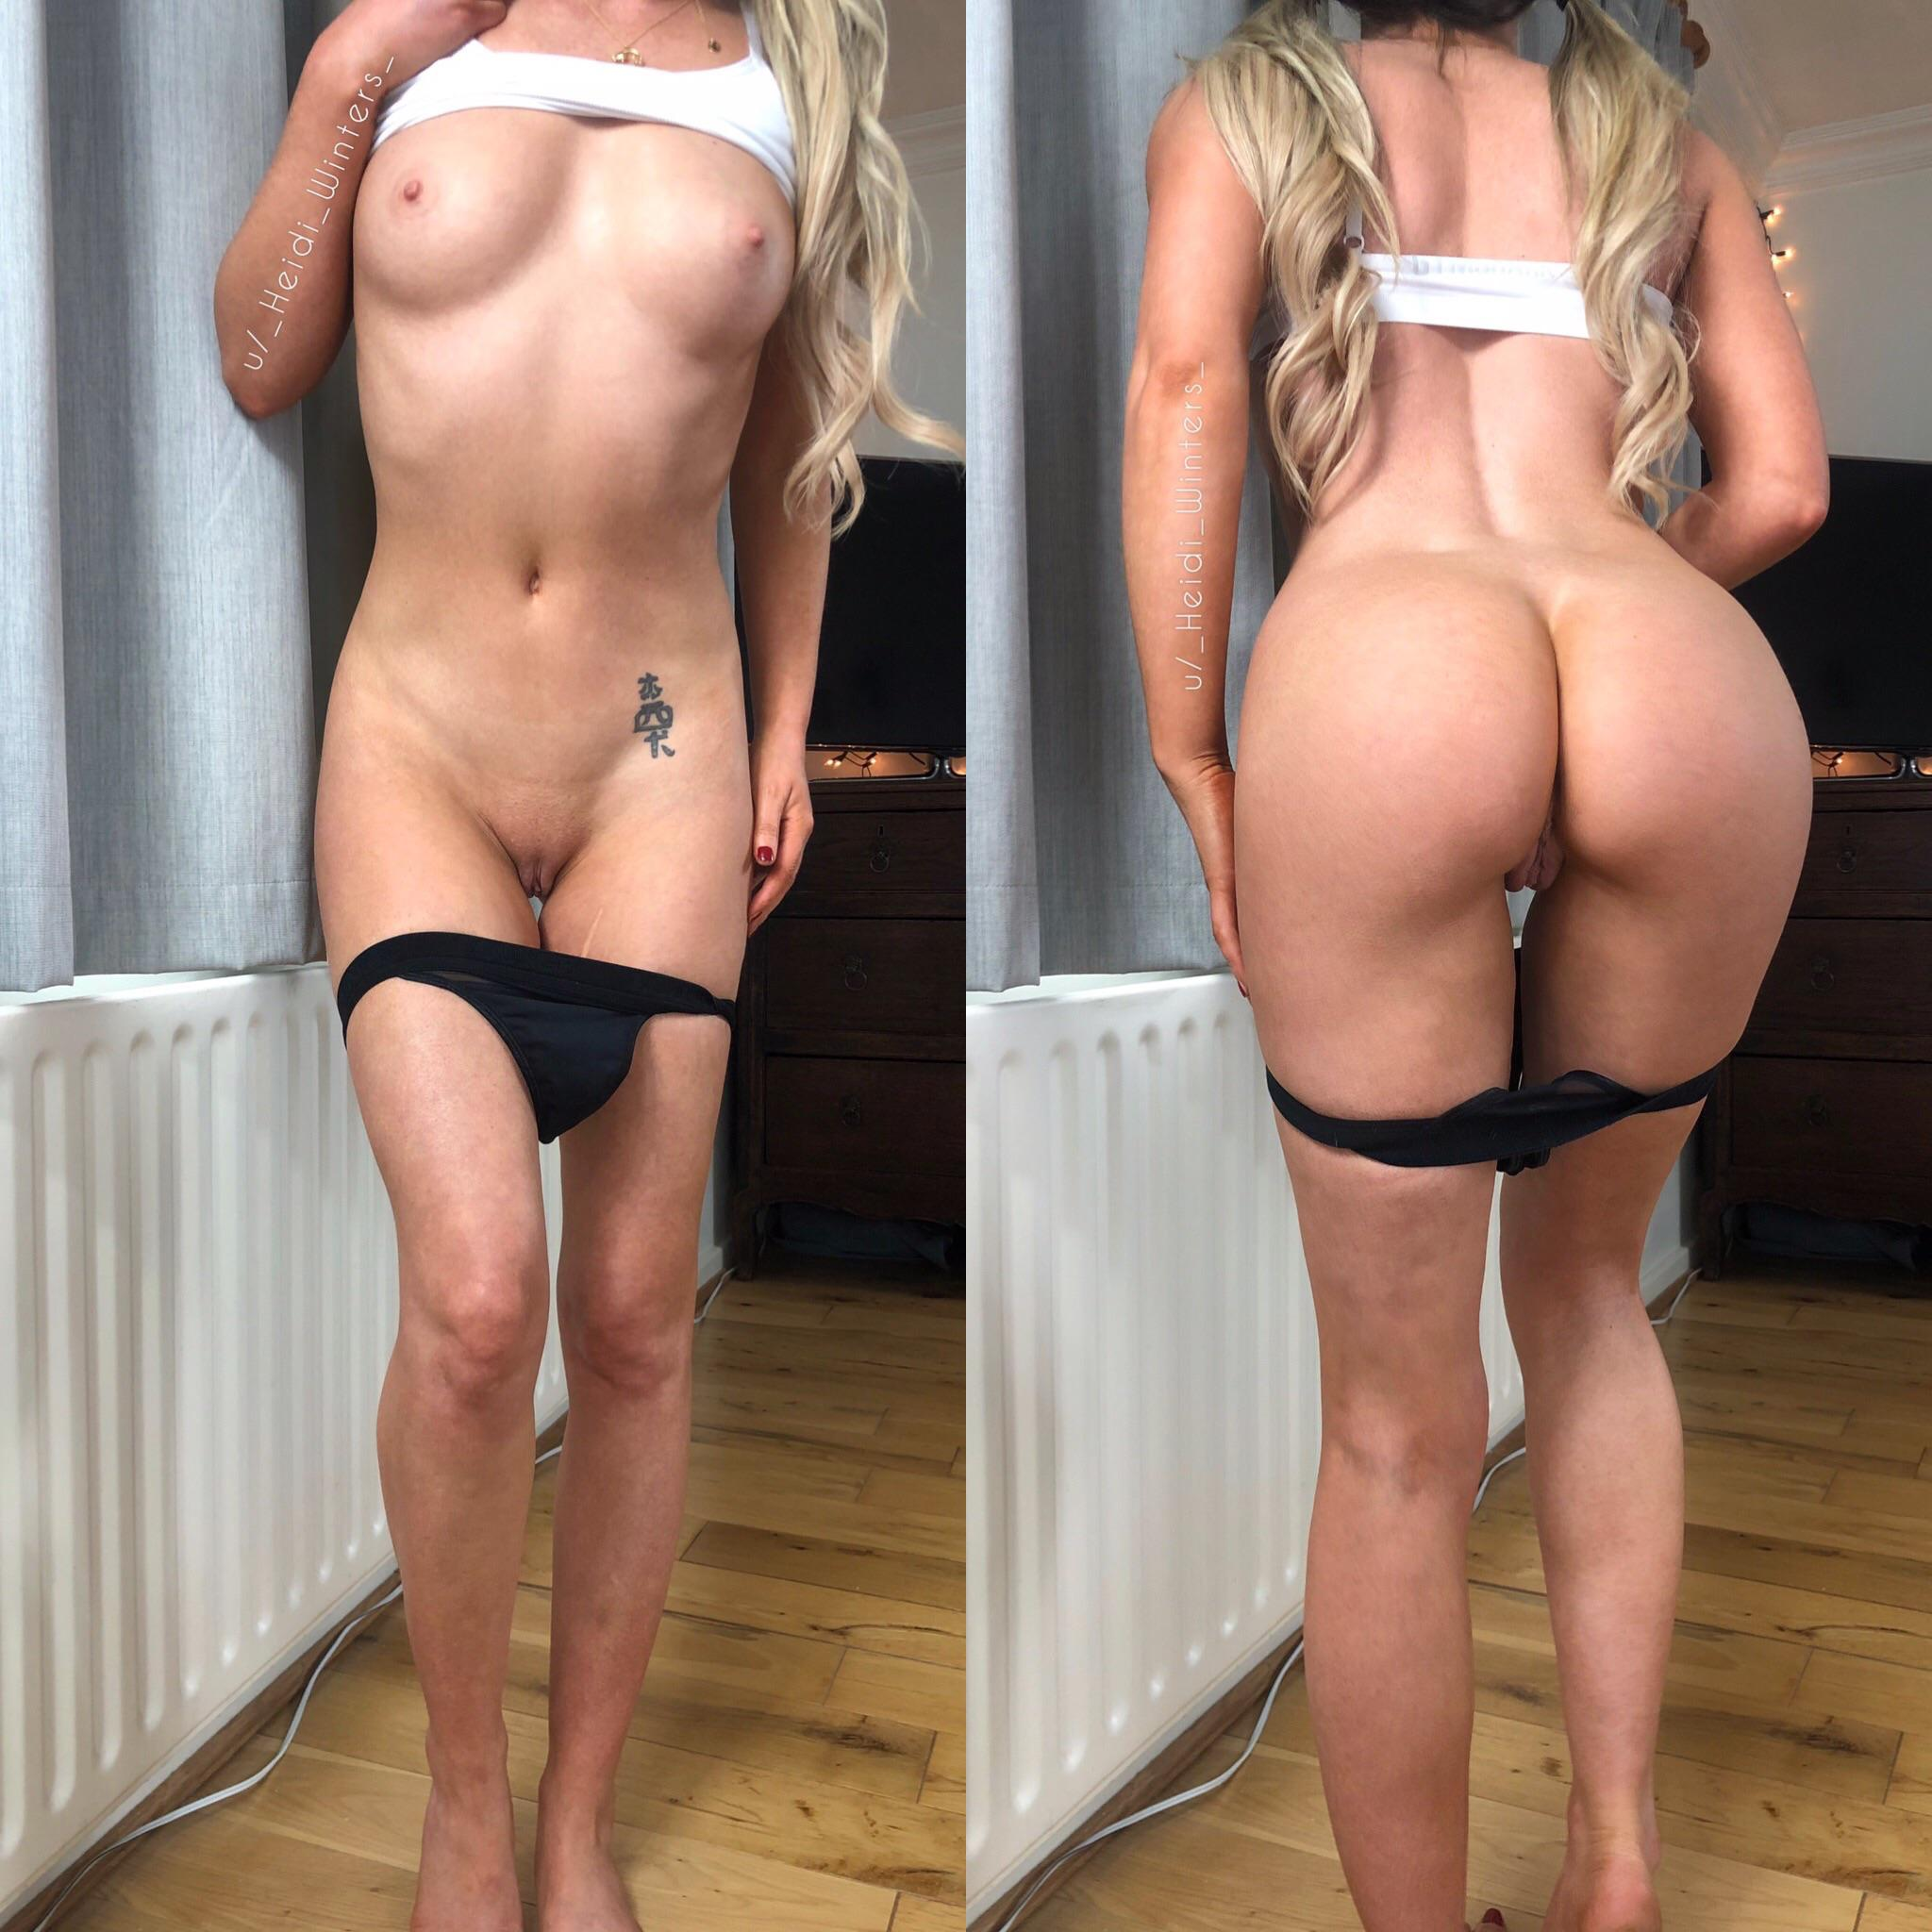 Is Anyone Into Petite, British Blondes?